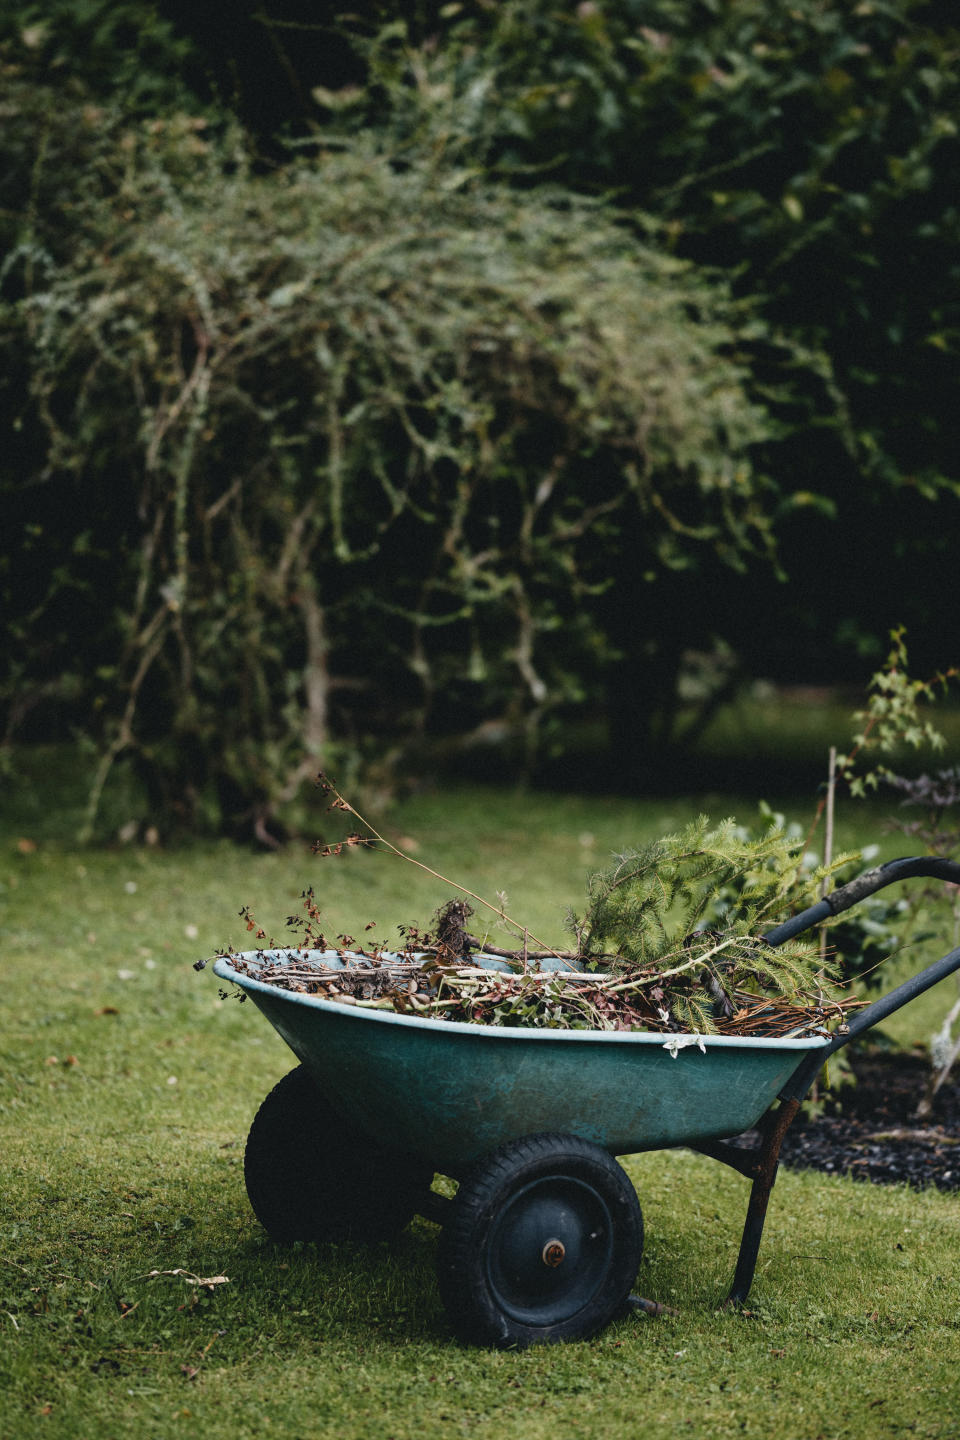 winter garden jobs: wheelbarrow on lawn